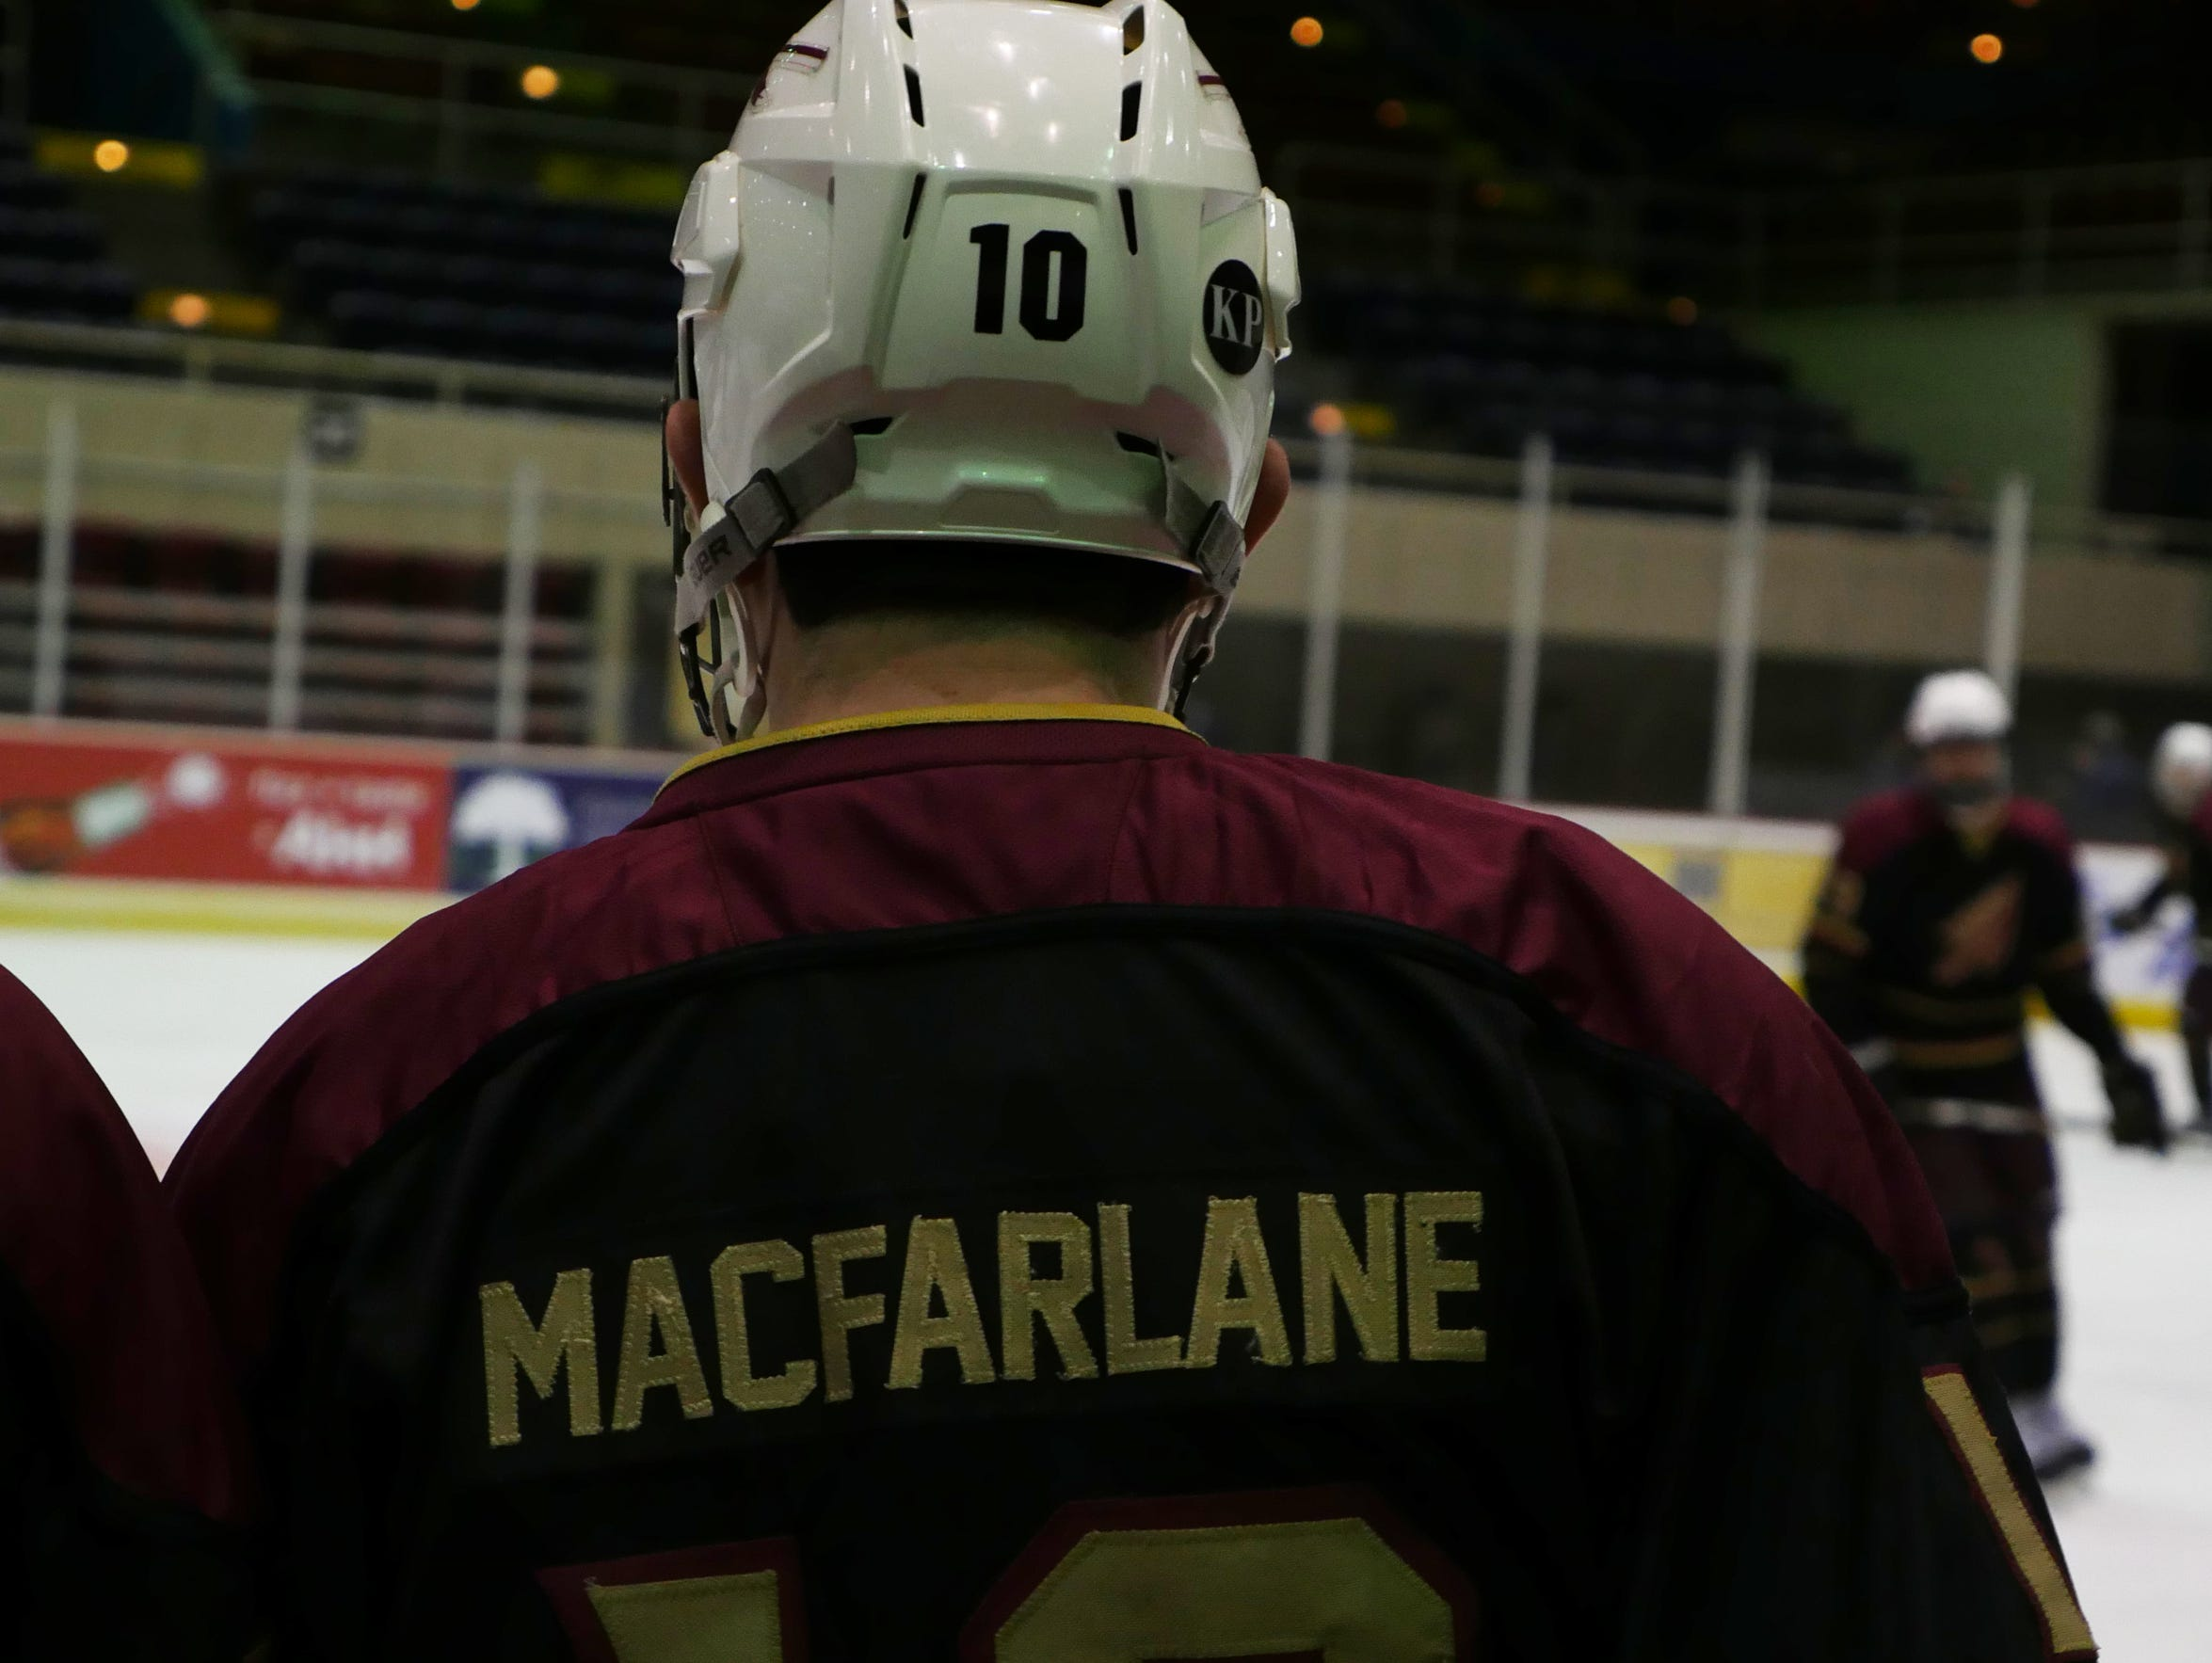 MacFarlane spent several years as part of the FSU Hockey